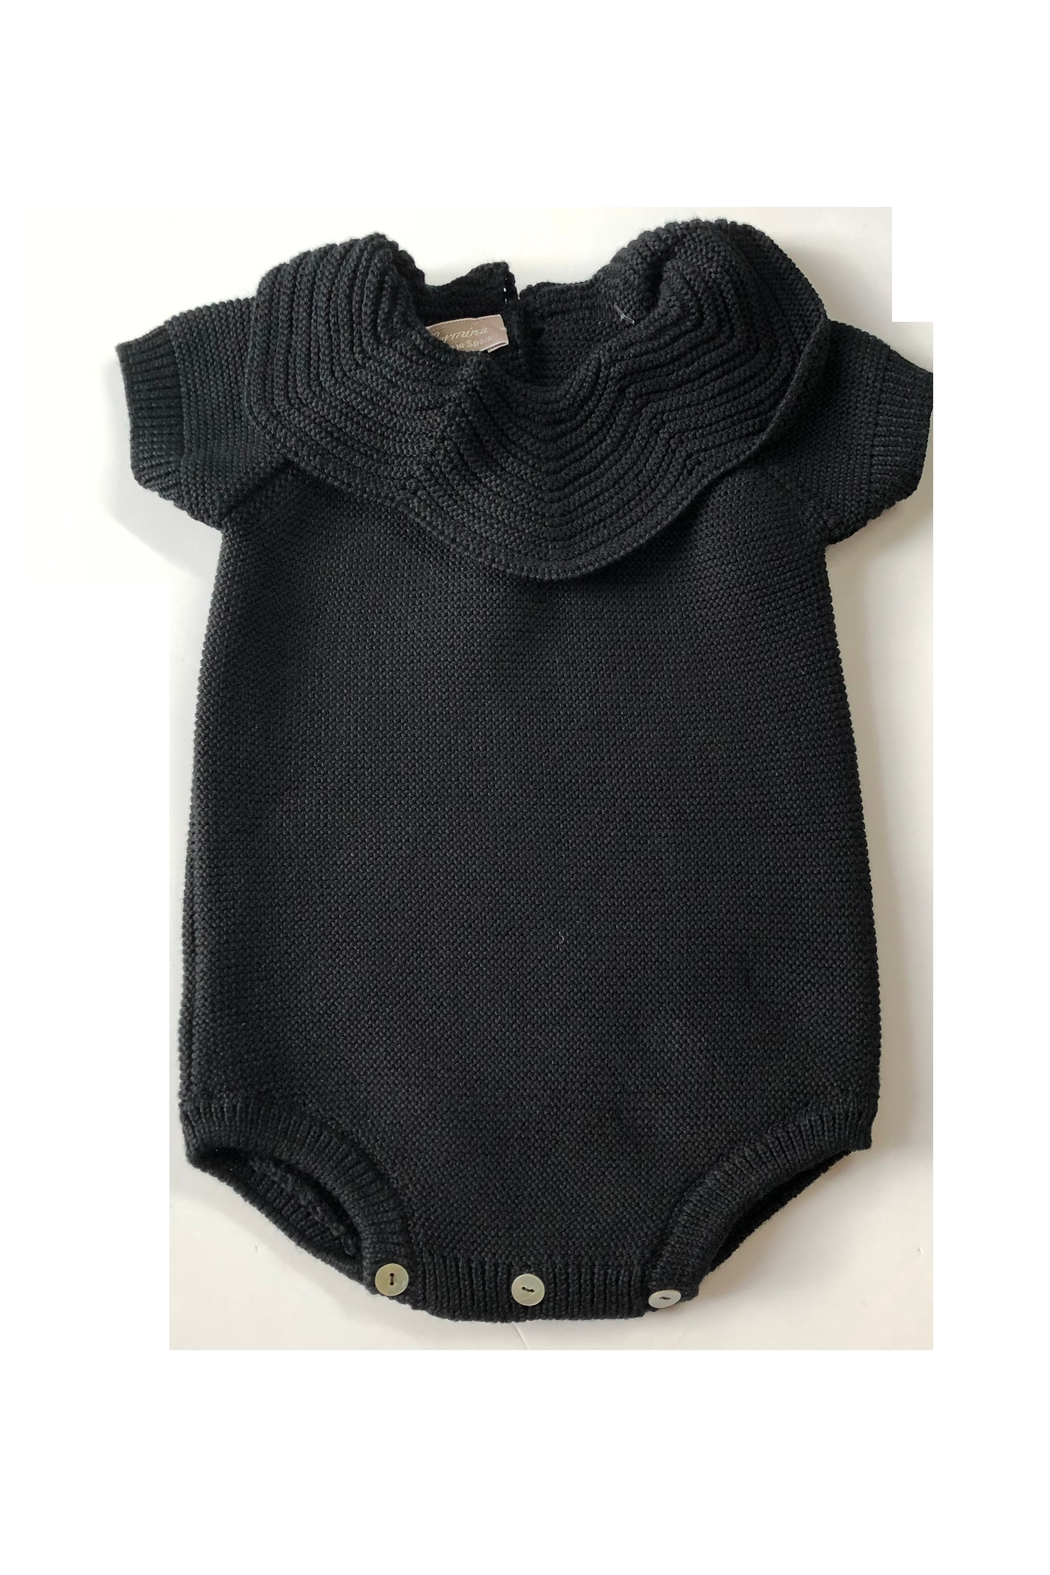 CARMINA FINEST KNIT BABY BUBBLE WITH KNIT COLLAR - Main Image